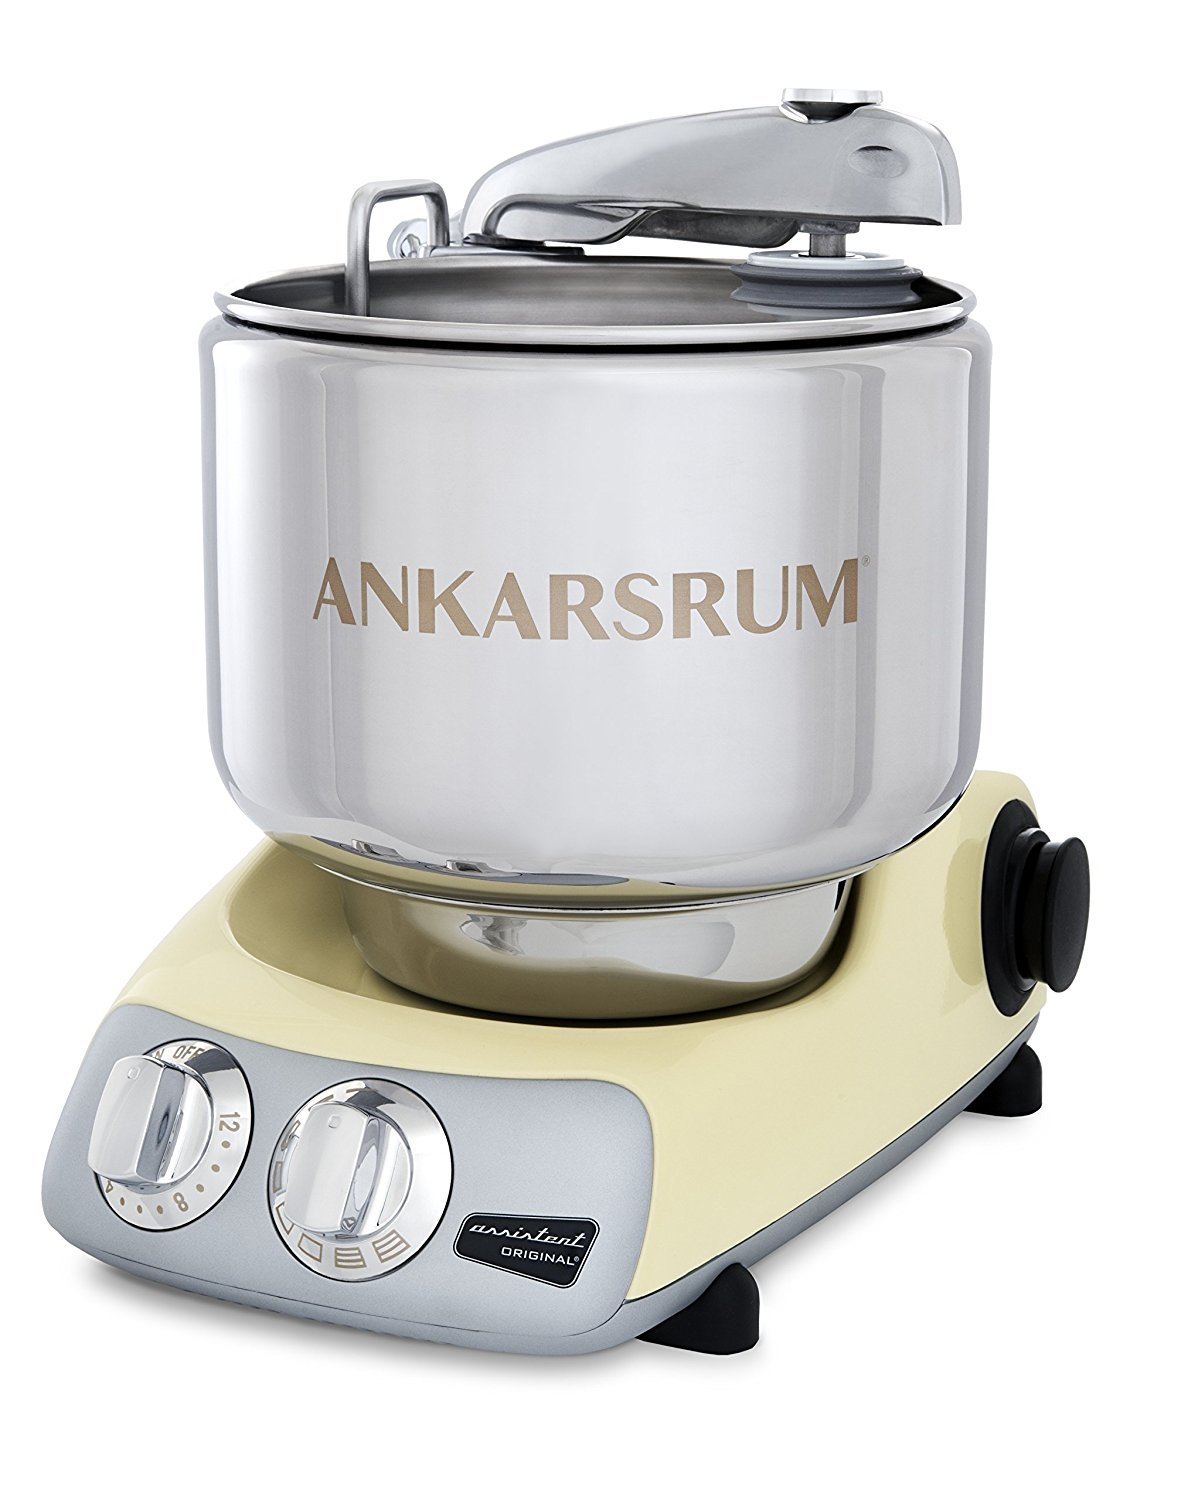 Ankarsrum Original 6230 Creme and Stainless Steel 7 Liter Stand Mixer